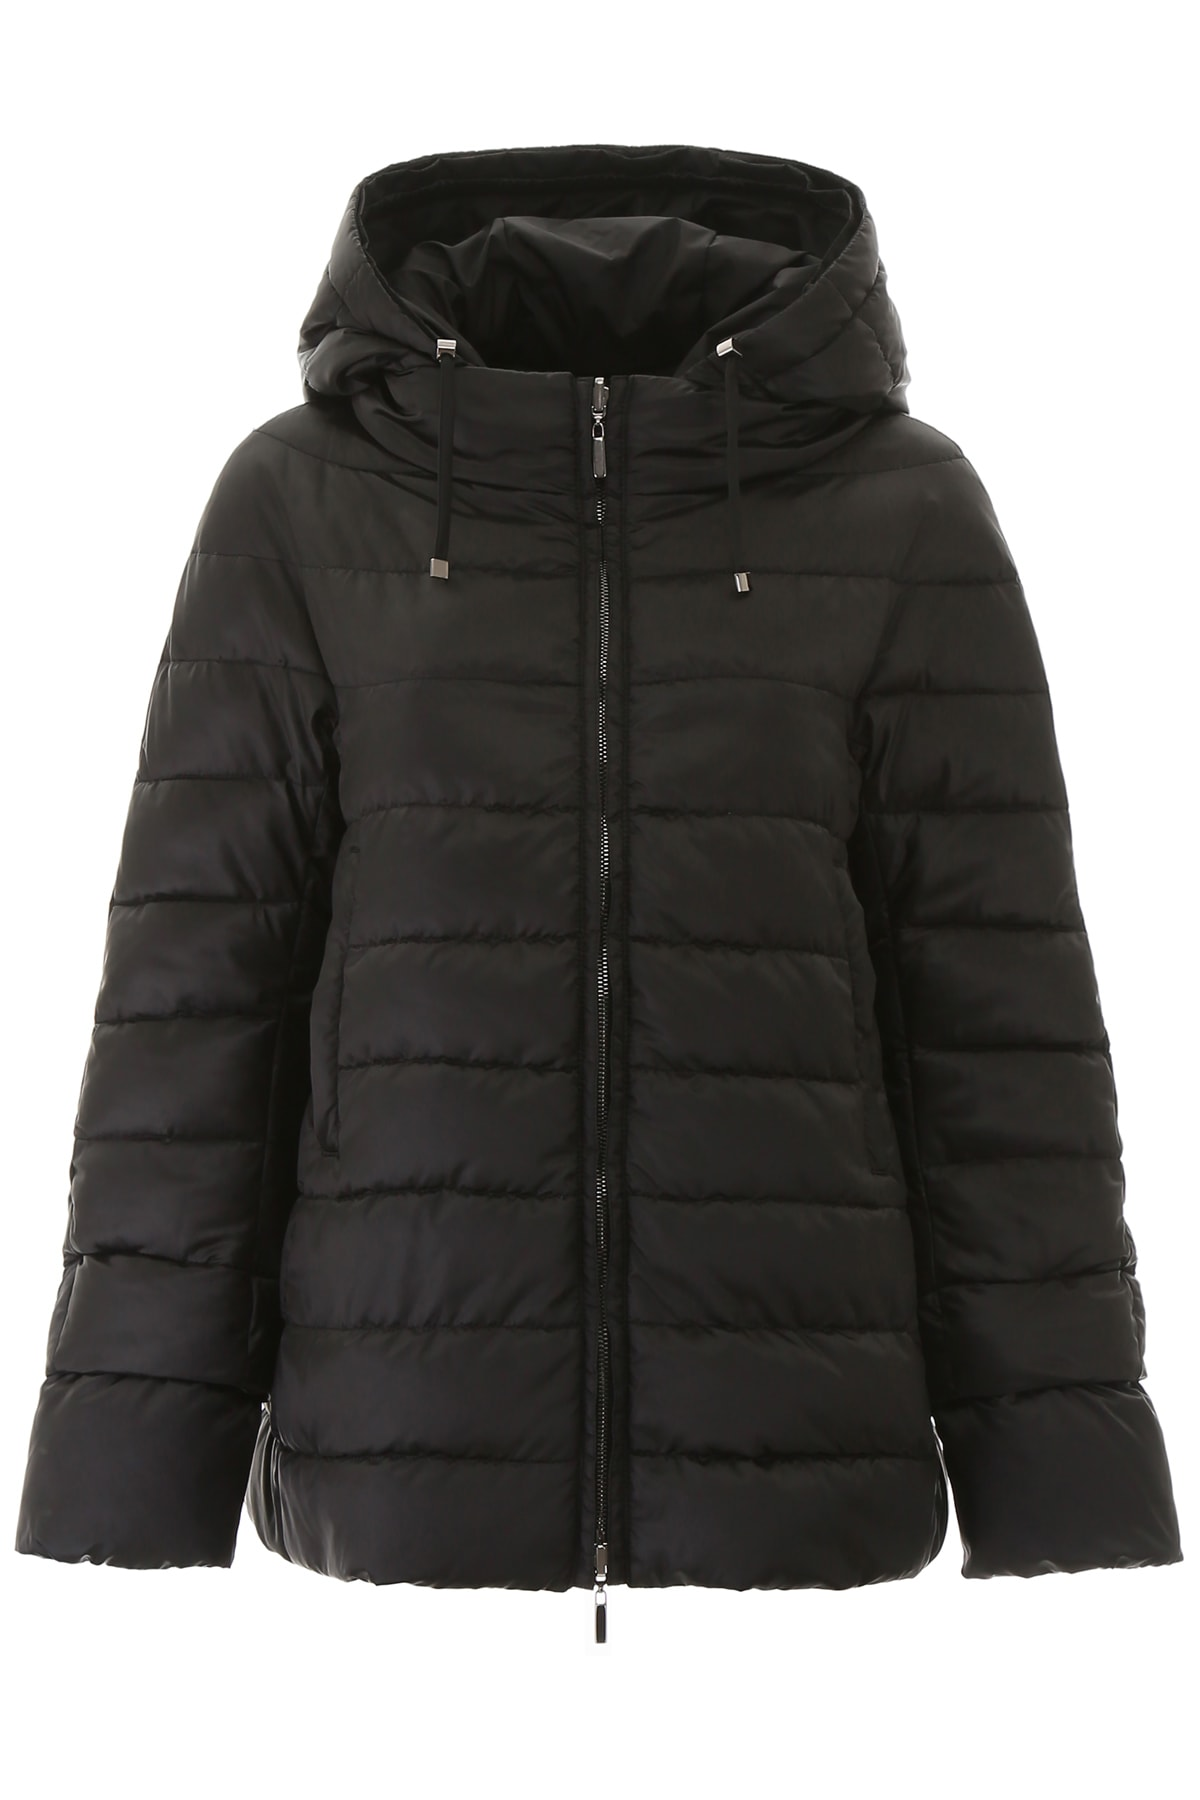 S Max Mara Here is The Cube Novecc Reversible Puffer Jacket